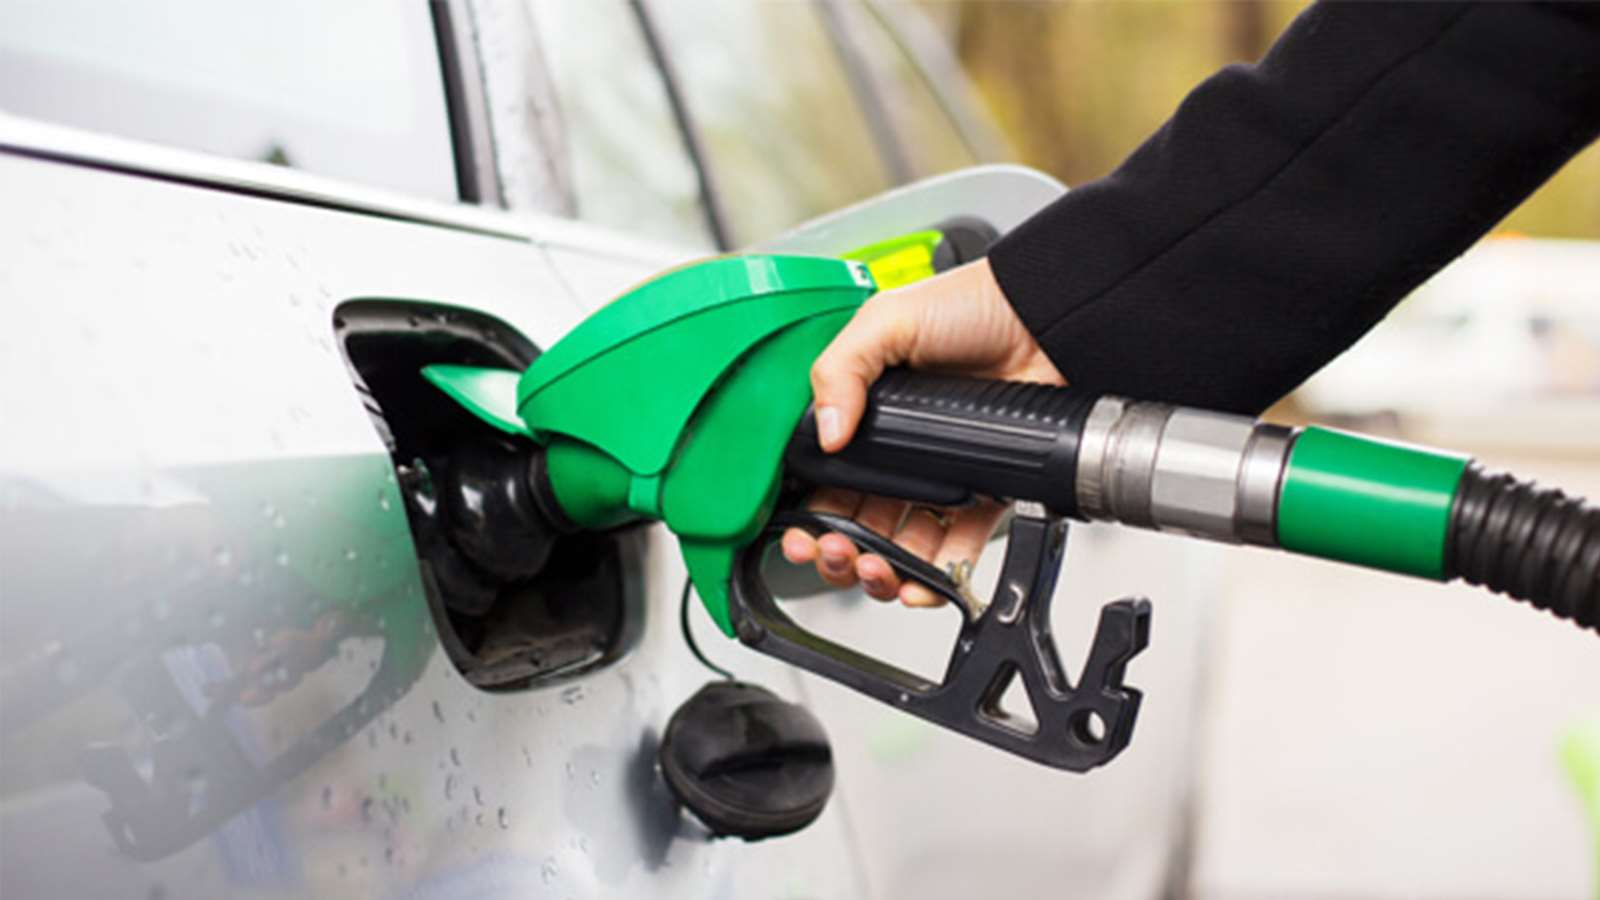 How cruise control helps in saving fuel consumption